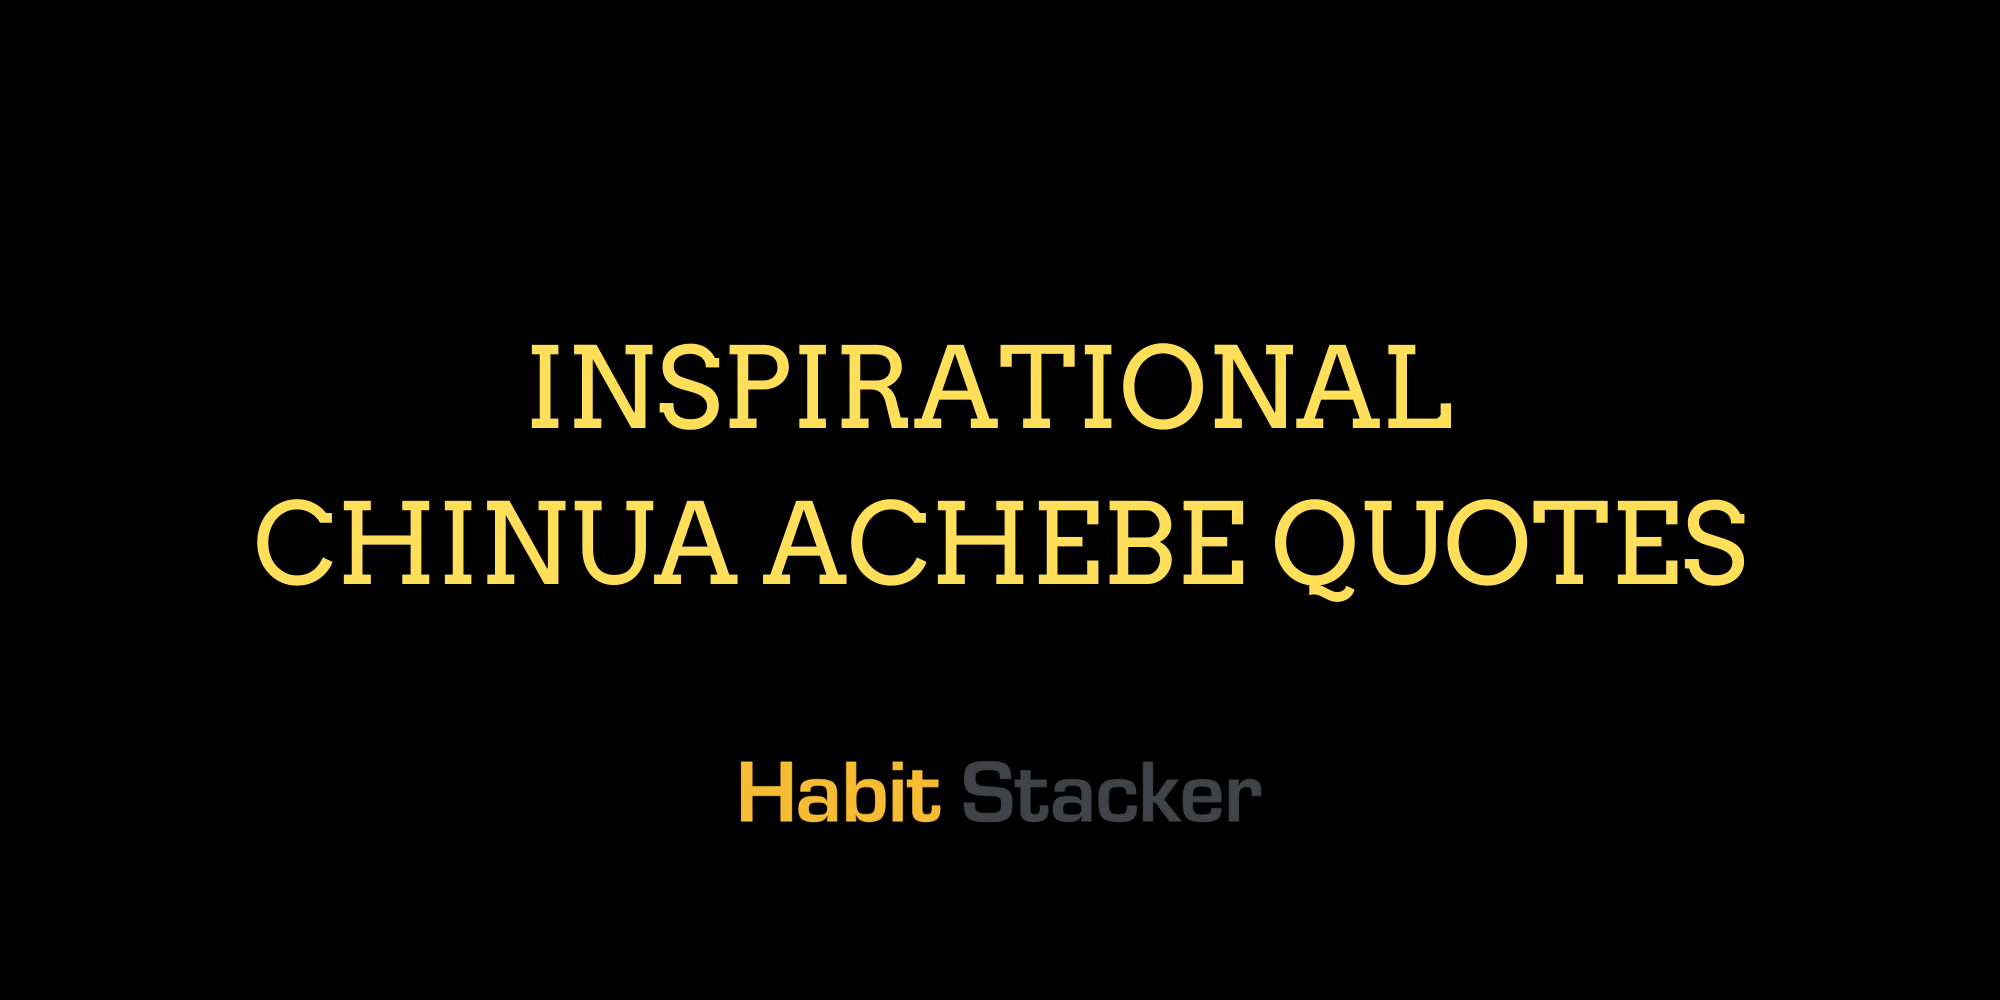 Inspirational Chinua Achebe Quotes